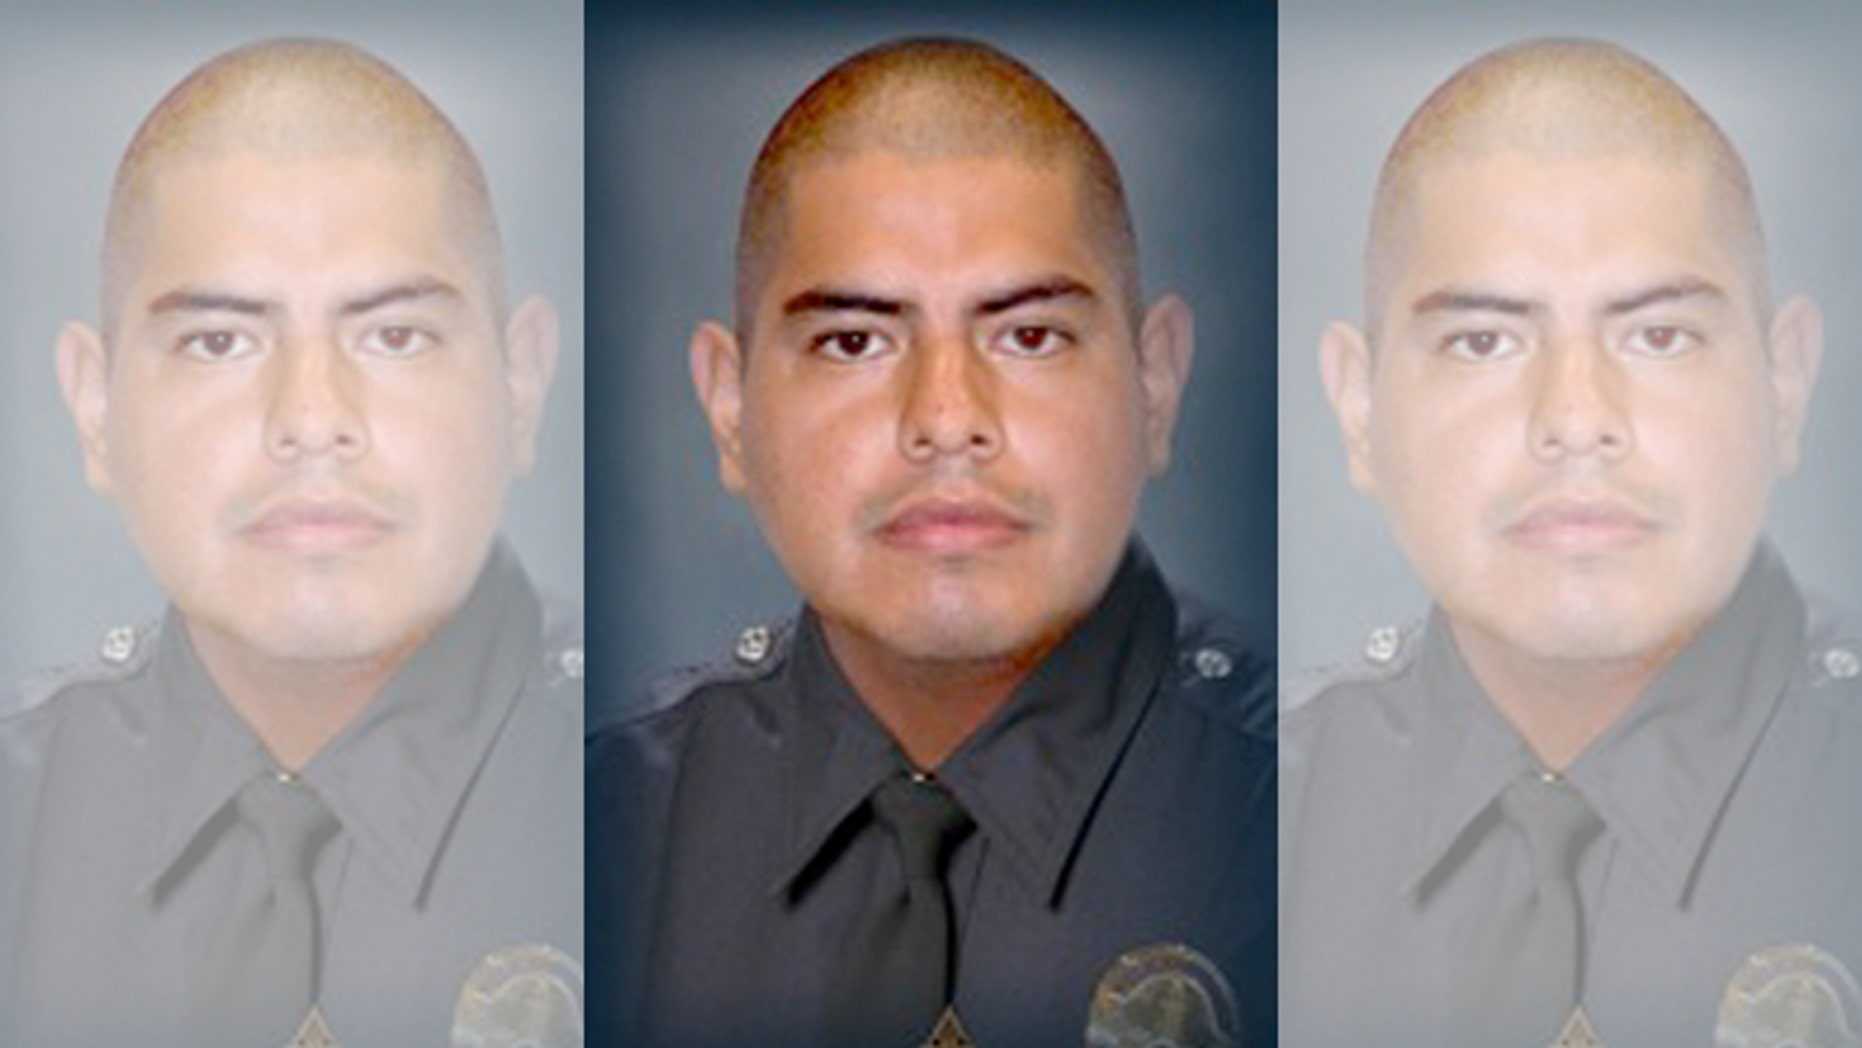 This image provided by the Los Angeles Police Department shows Officer Roberto C. Sanchez, who died Saturday May 3, 2014, at a Los Angeles hospital after the patrol car he was driving was broadsided by an SUV in the Harbor City area. The squad car was so mangled that Sanchez's partner had to call for help on his personal cellphone because the police radio wasn't working. (AP Photo/LAPD)